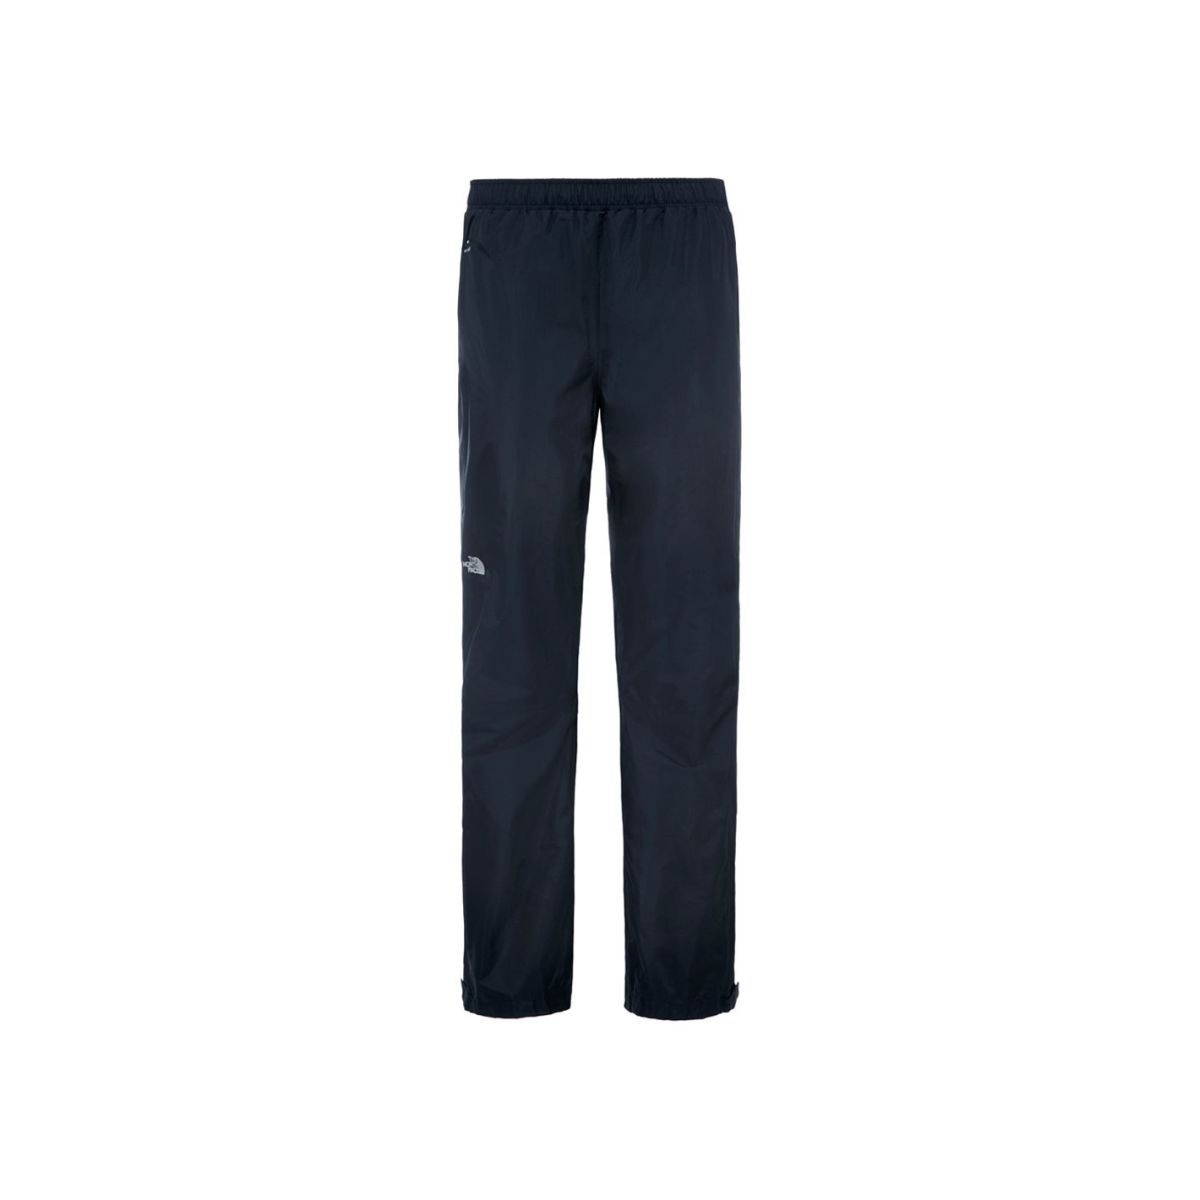 THE NORTH FACE - W RESOLVE PANT TNF BLACK - WOMEN